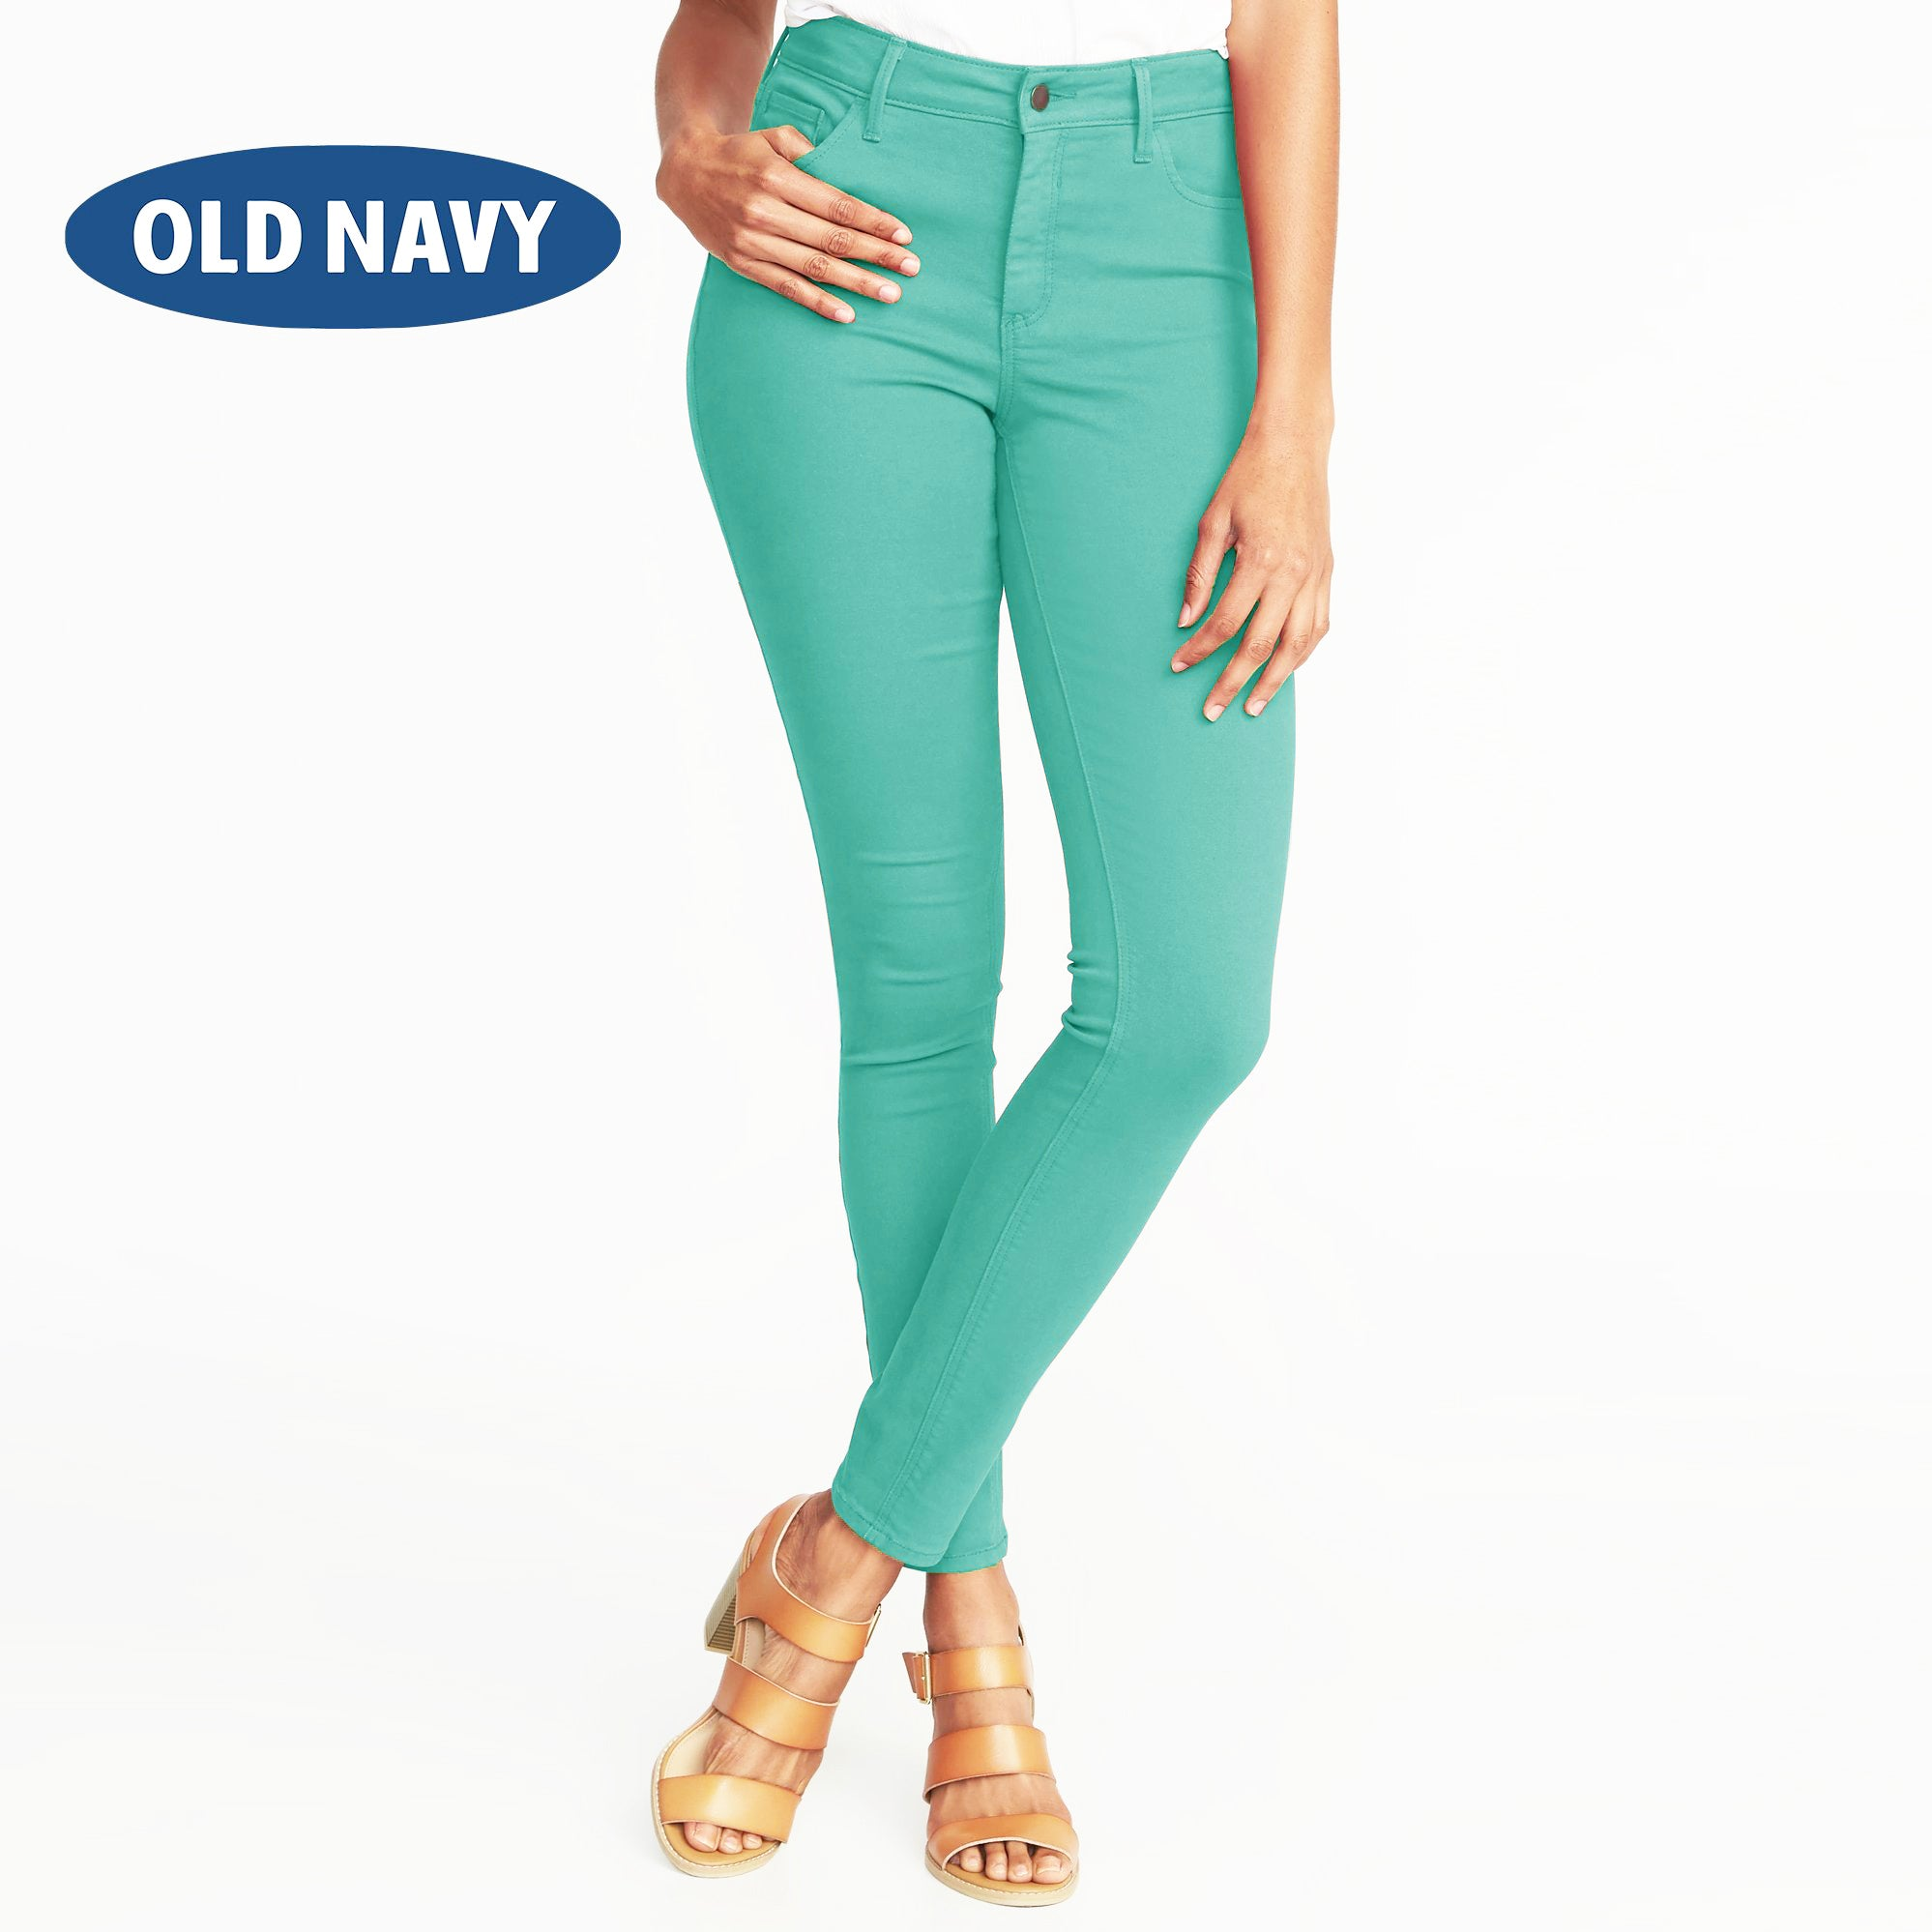 Old Navy Stylish Slim Fit Denim For Ladies-Light Turquoise -NA8783